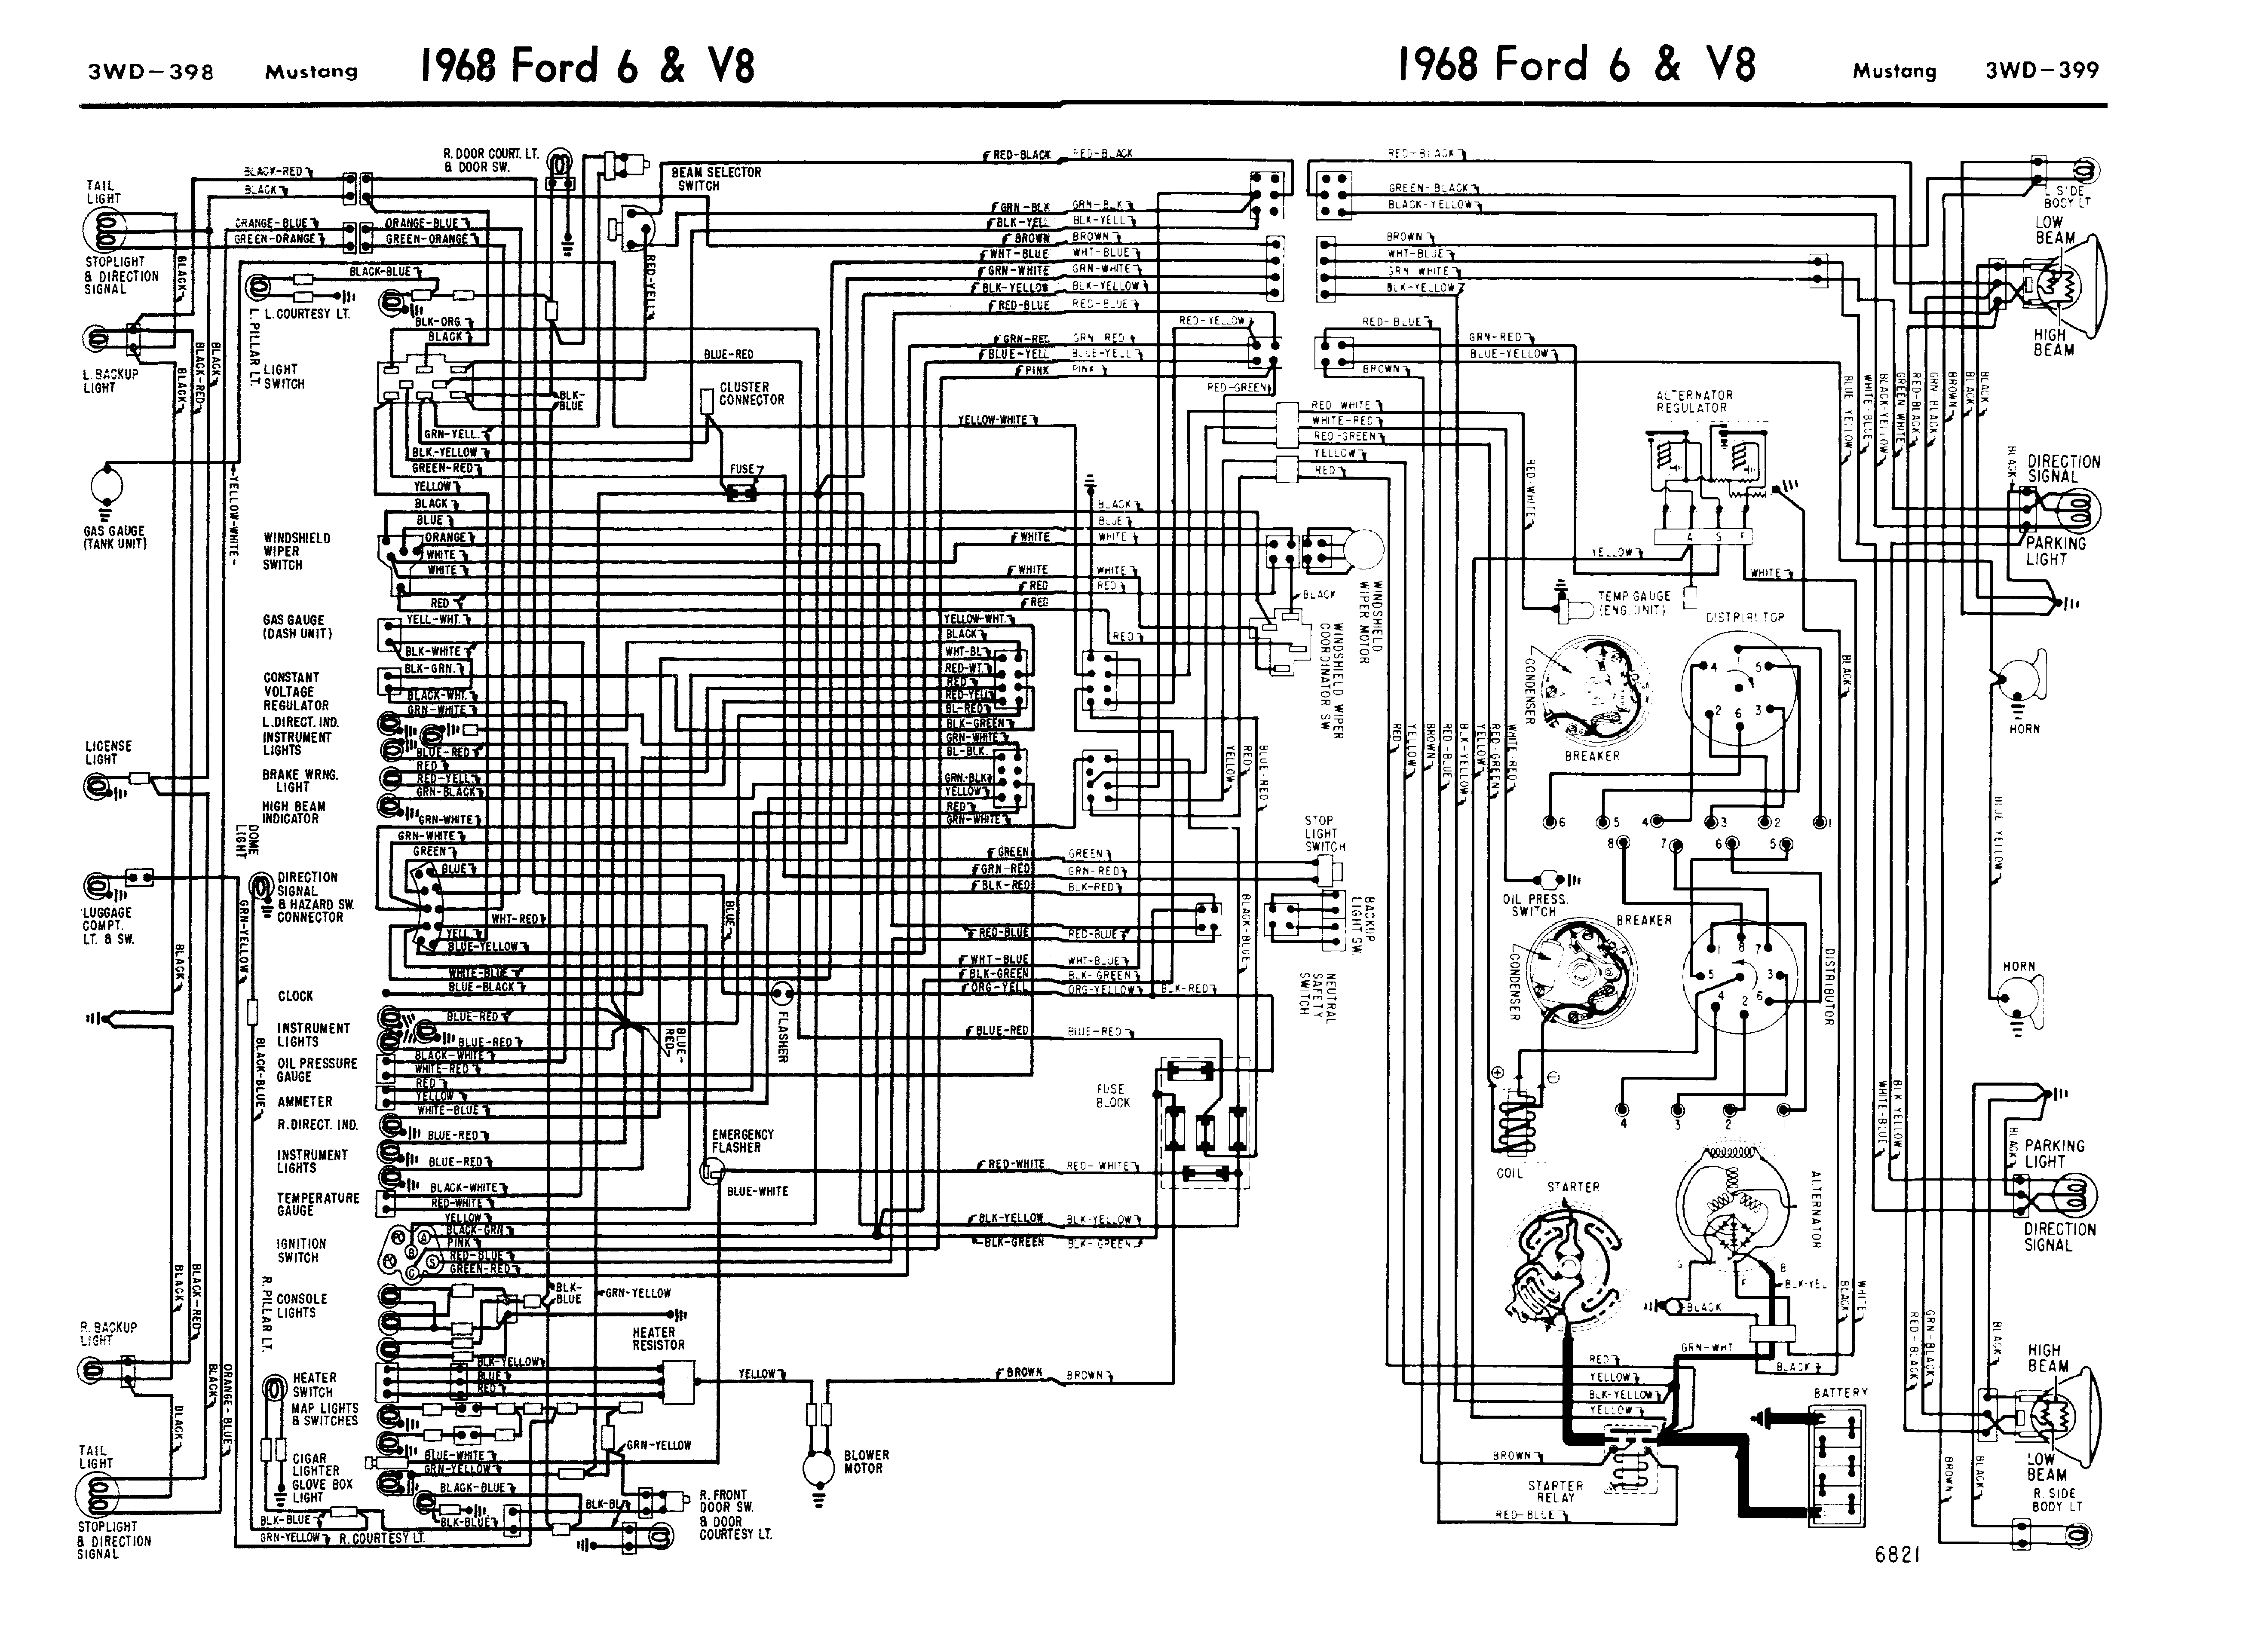 68mustang_wiring_guide1 1968 mustang wiring diagrams evolving software 2007 Mustang Wiring Diagram at reclaimingppi.co